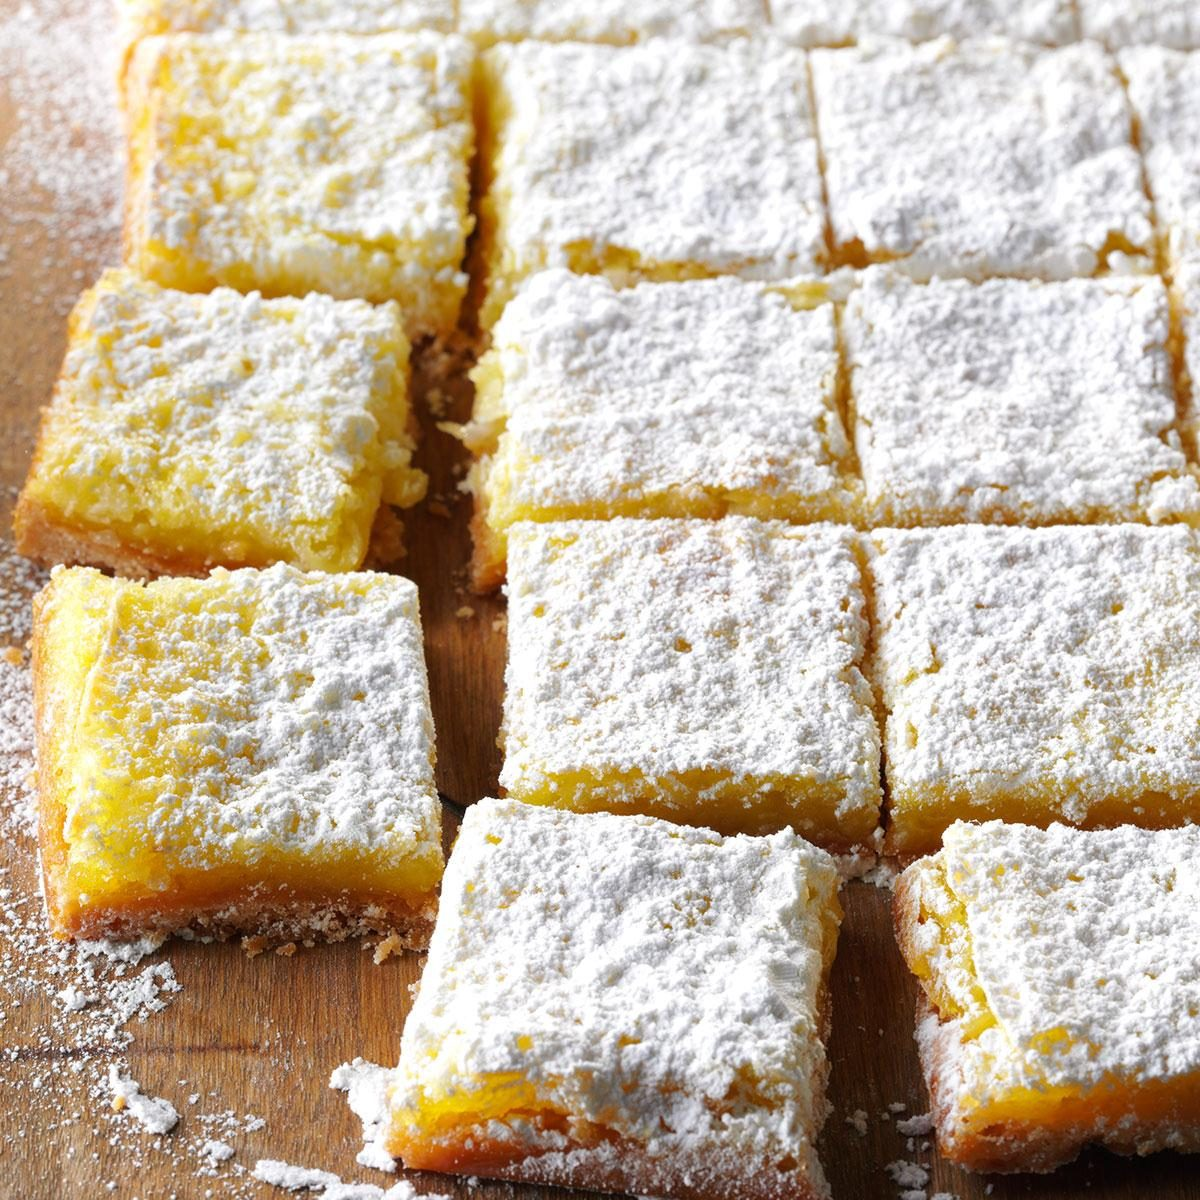 Our Top 10 Most Puckery Citrus Bar Recipes | Taste of Home